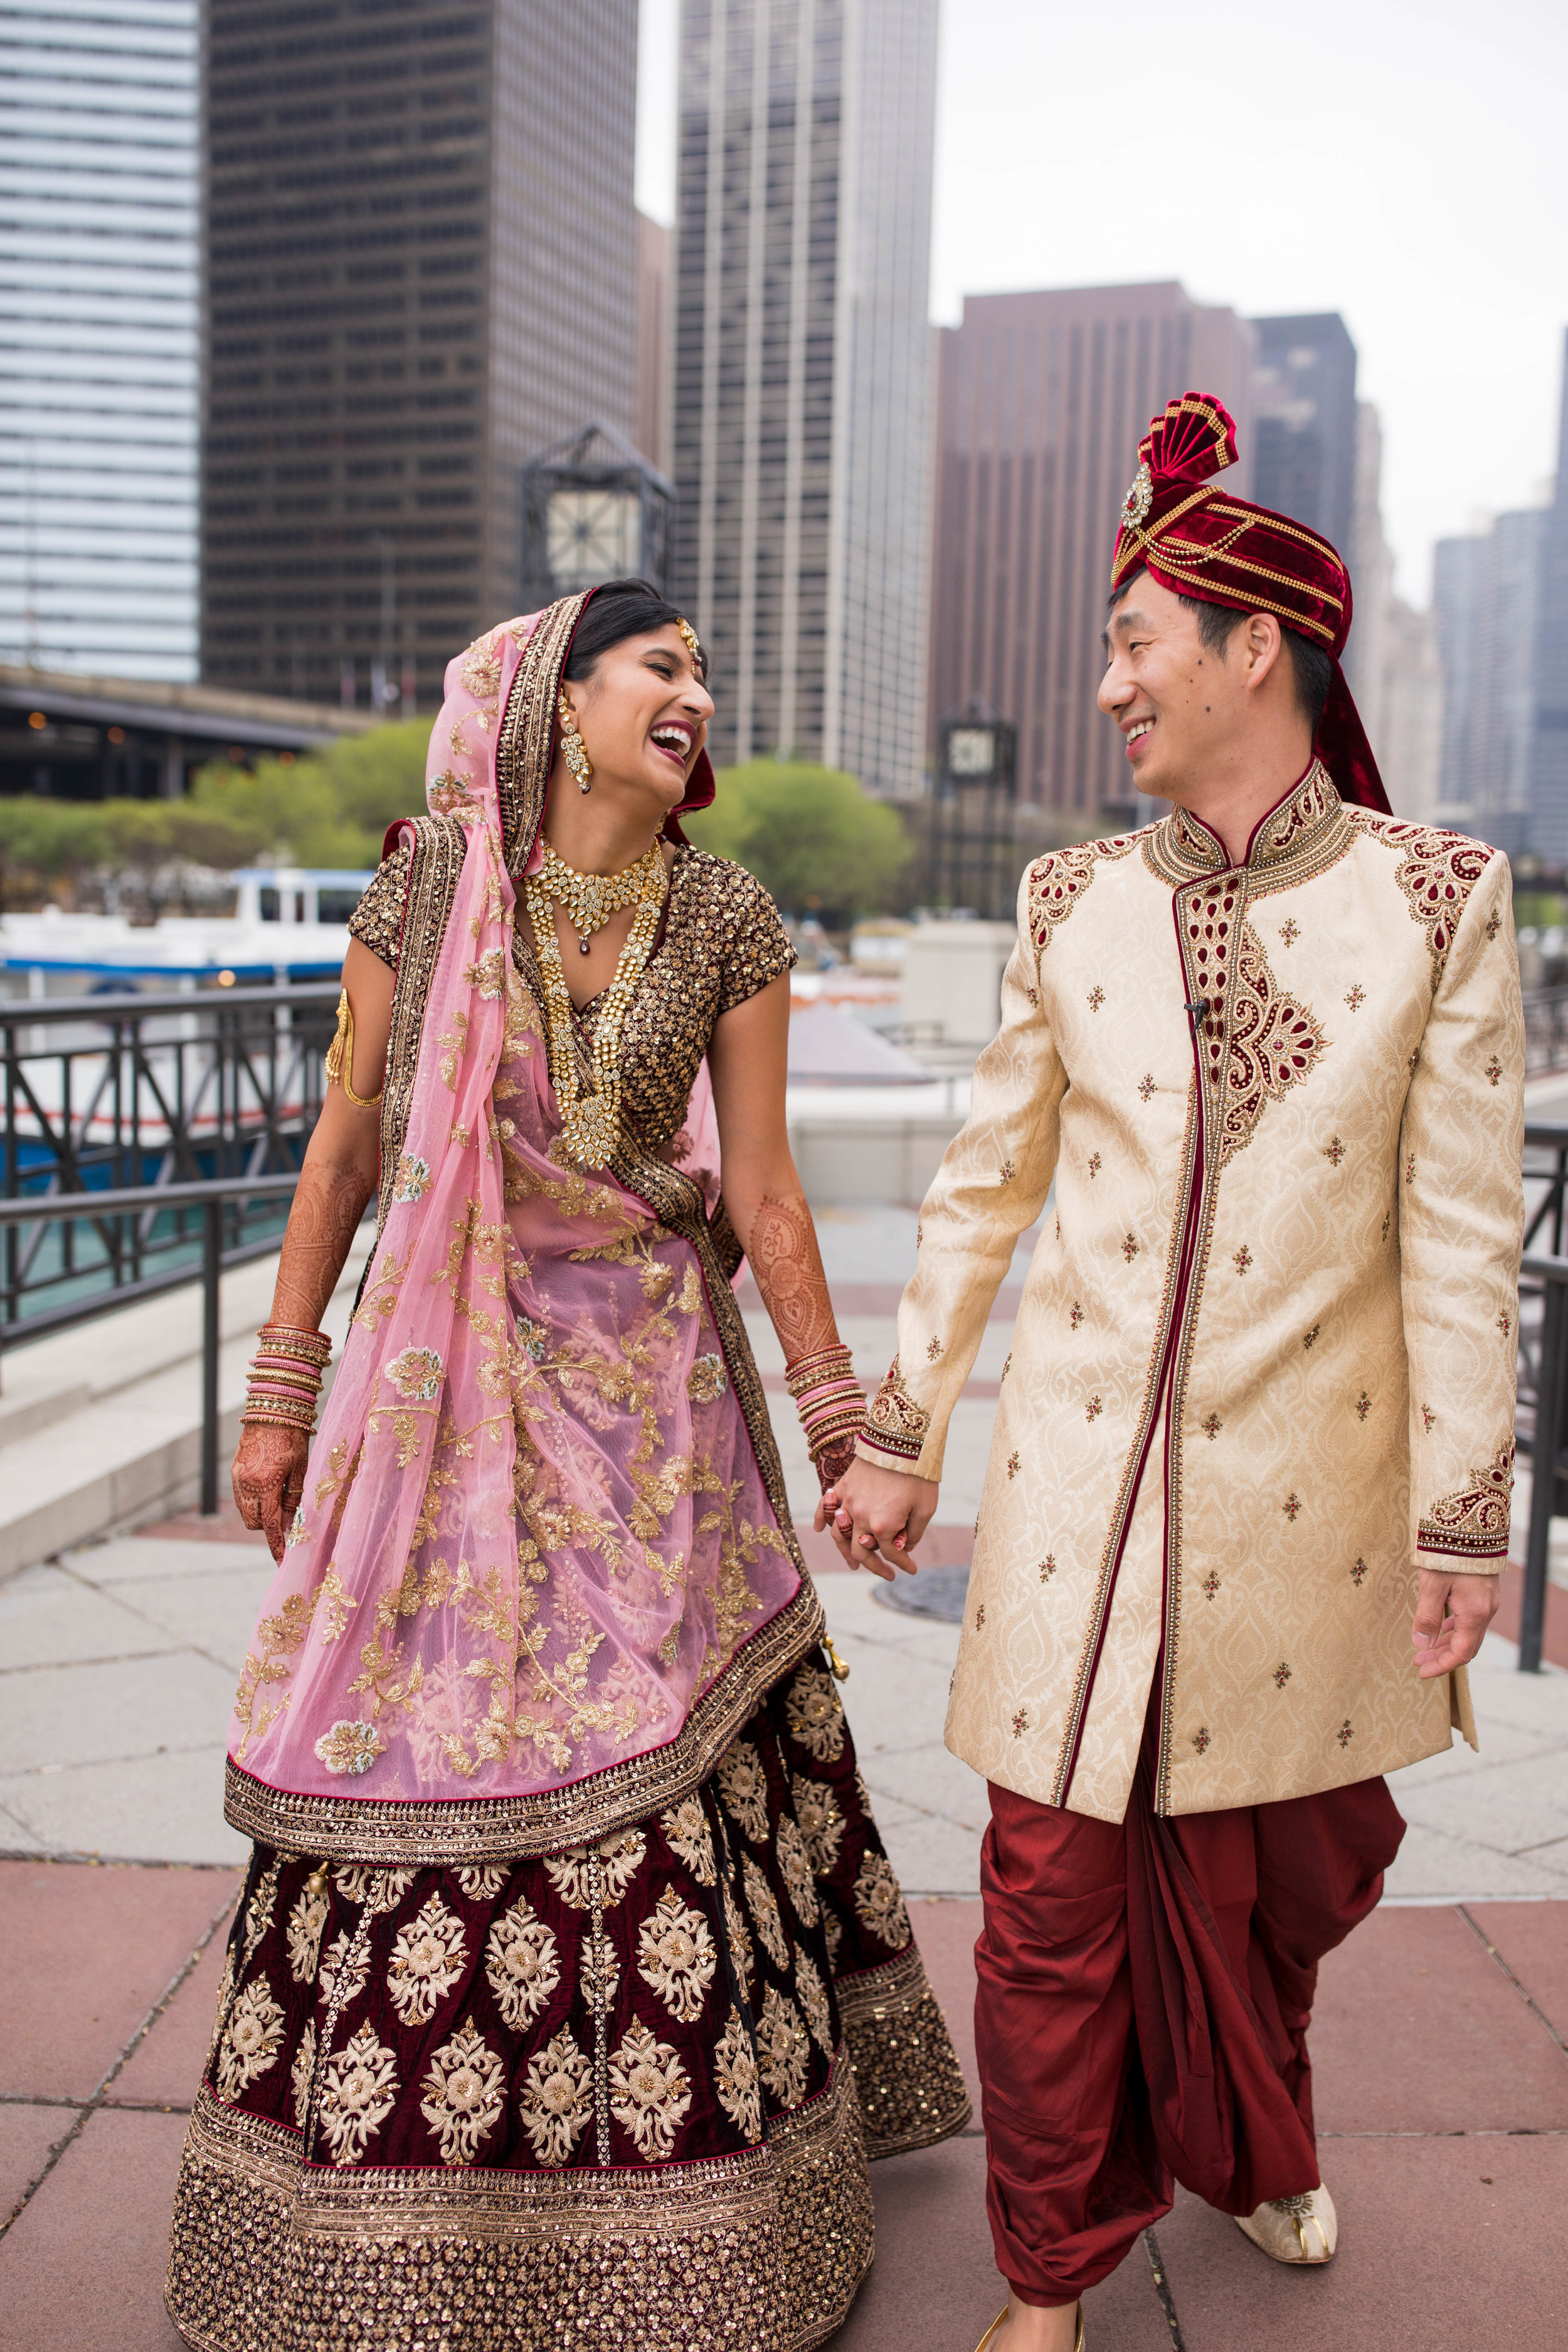 LeCapeWeddings - Chicago South Asian Wedding -52.jpg